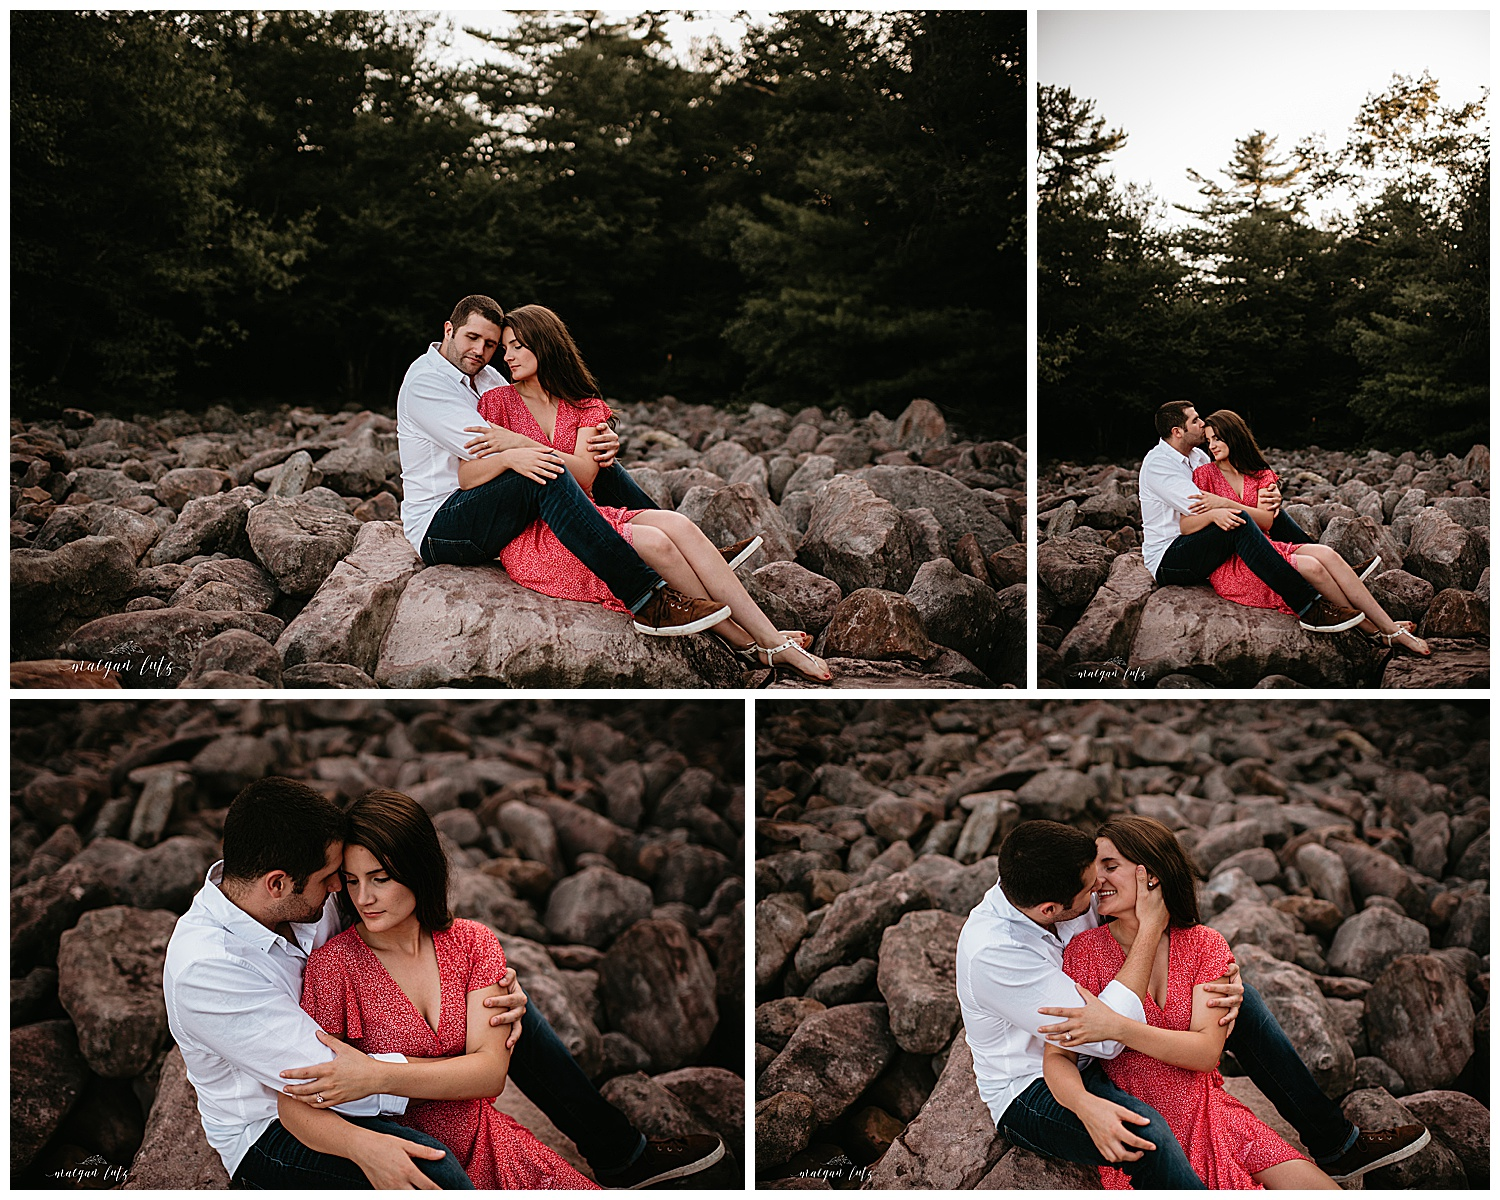 NEPA-Mount-Pocono-Lehigh-Valley-Wedding-Engagement-photographer-at-Hickory-Run-State-Park-Whitehaven-PA_0018.jpg